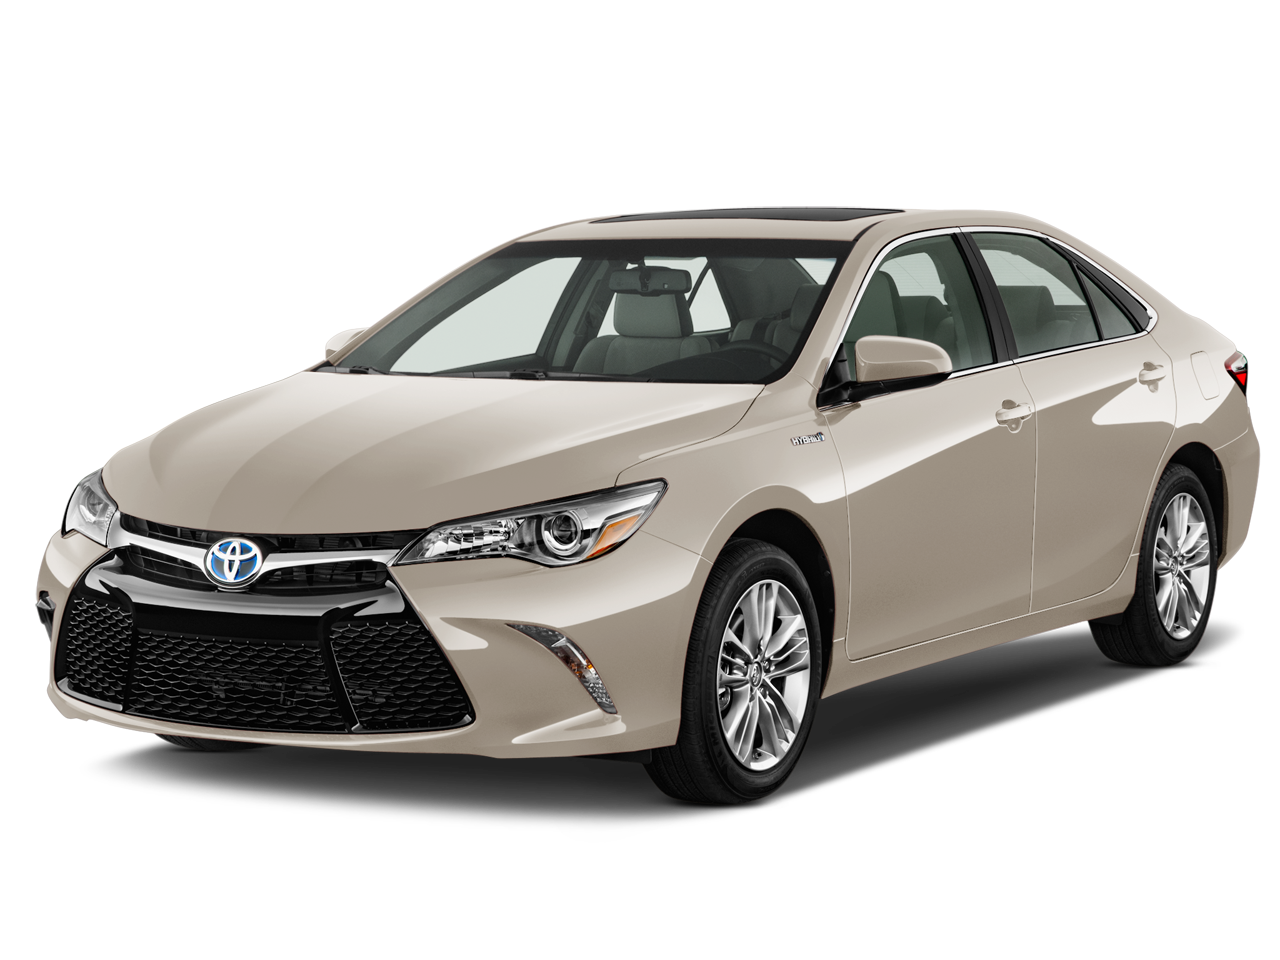 2017 toyota camry se price 2017 toyota camry se special. Black Bedroom Furniture Sets. Home Design Ideas